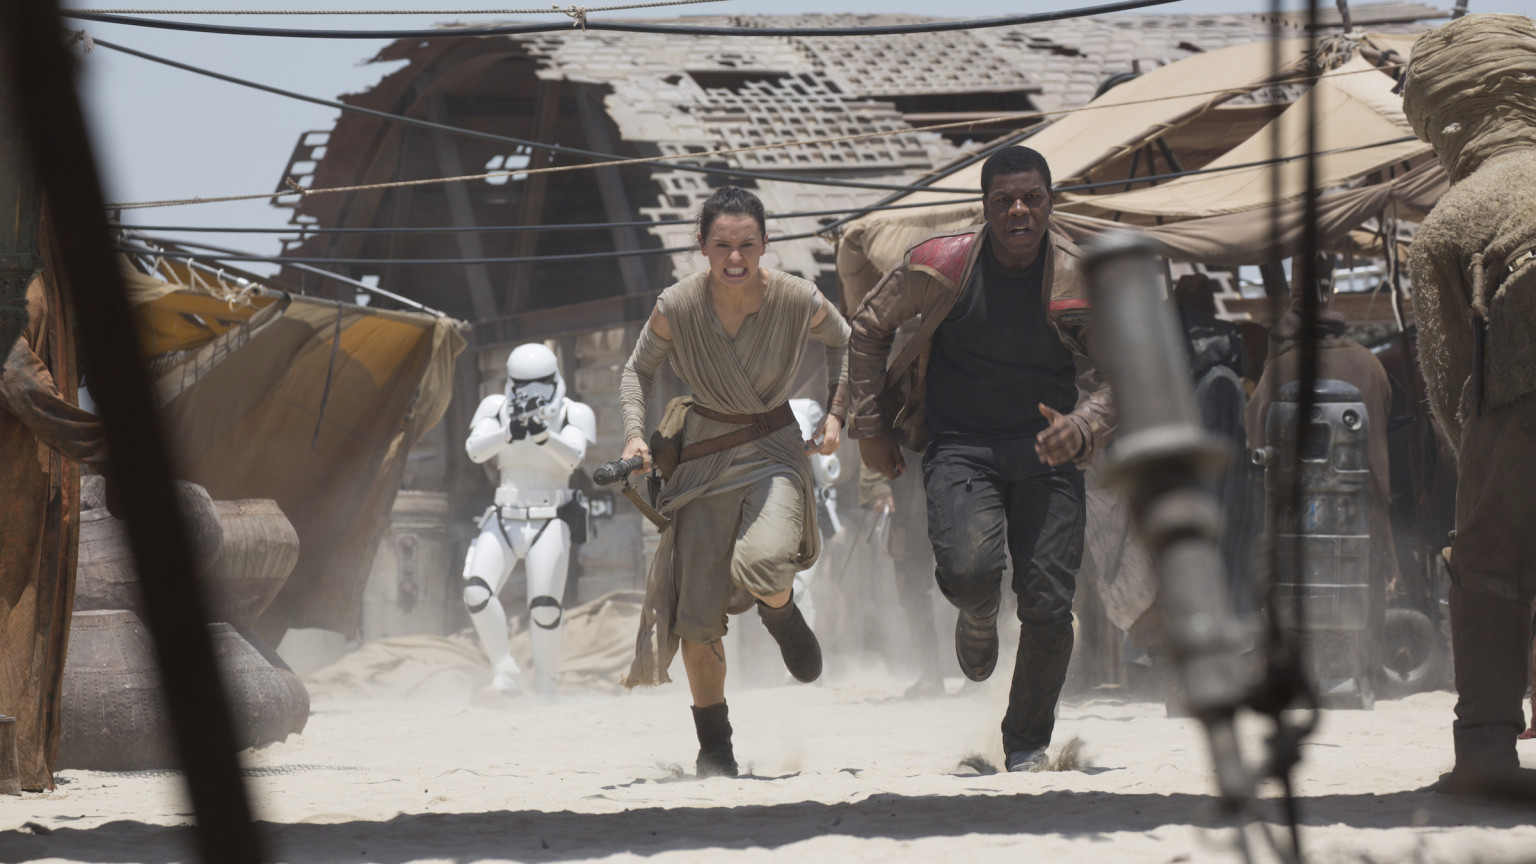 The Force Awakens - Rey and Finn running on Jakku